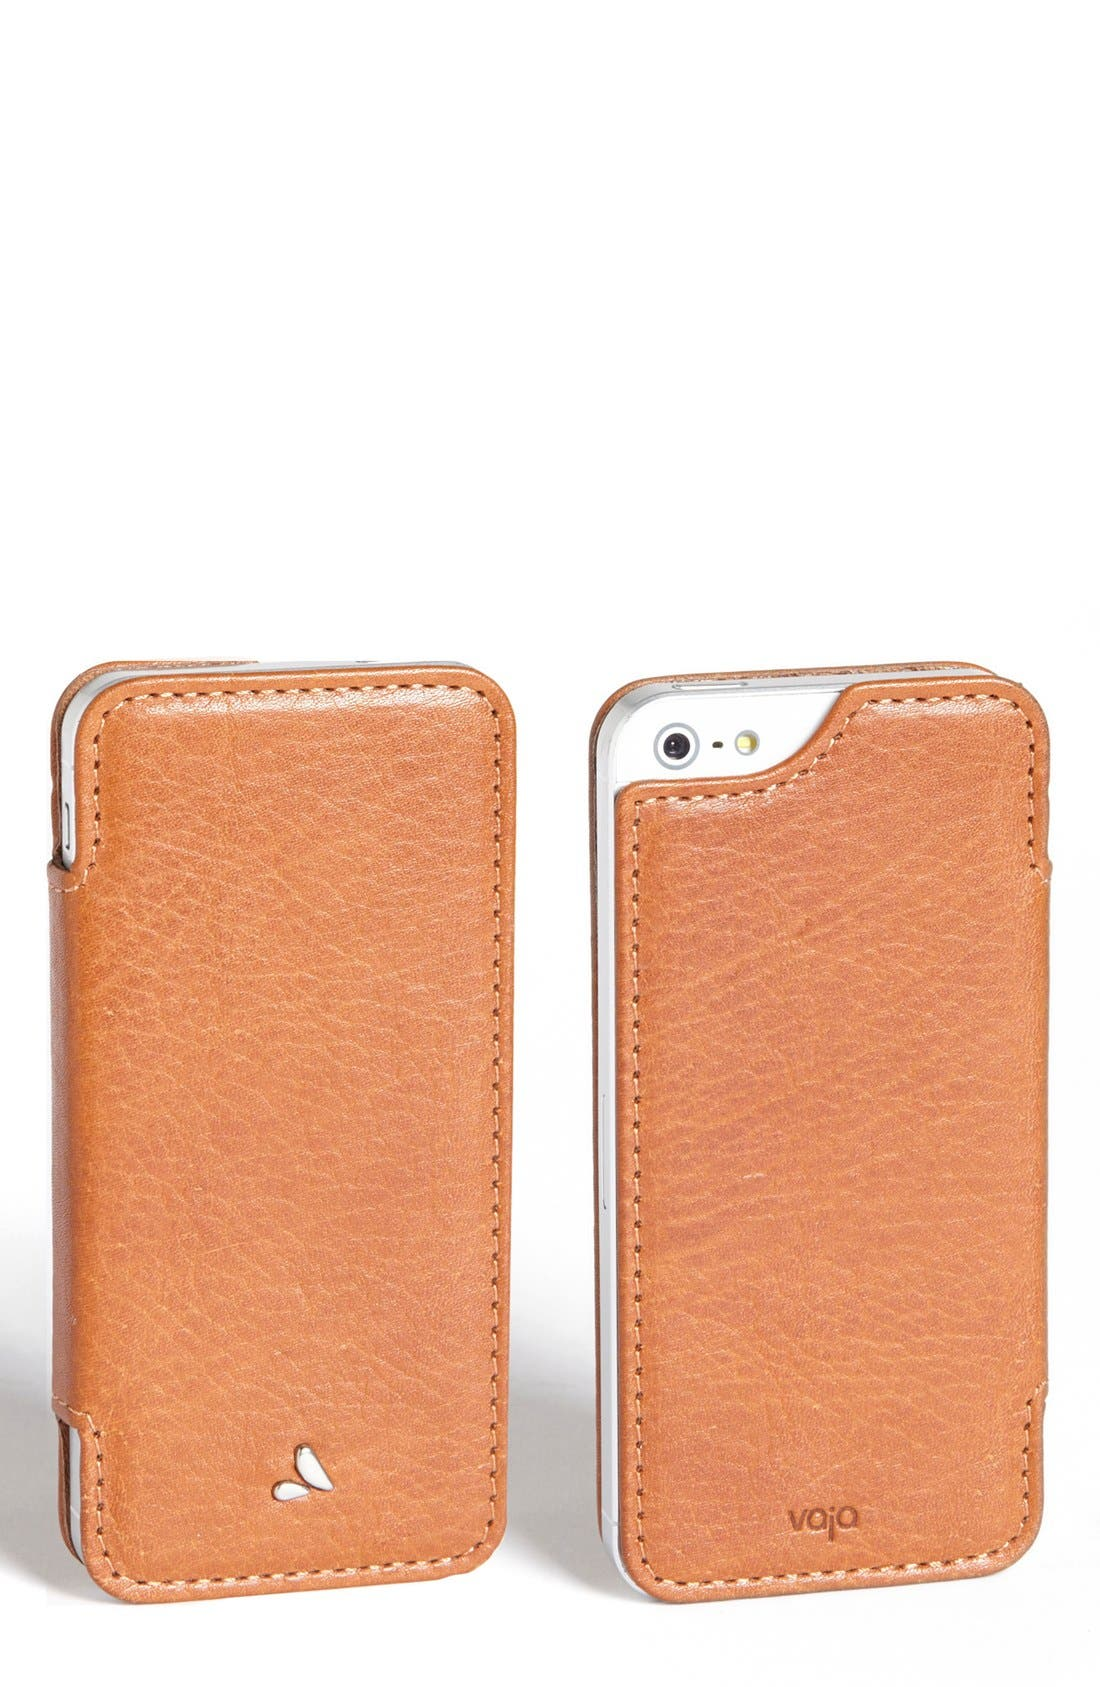 Main Image - Vaja iPhone 5 & 5s Case